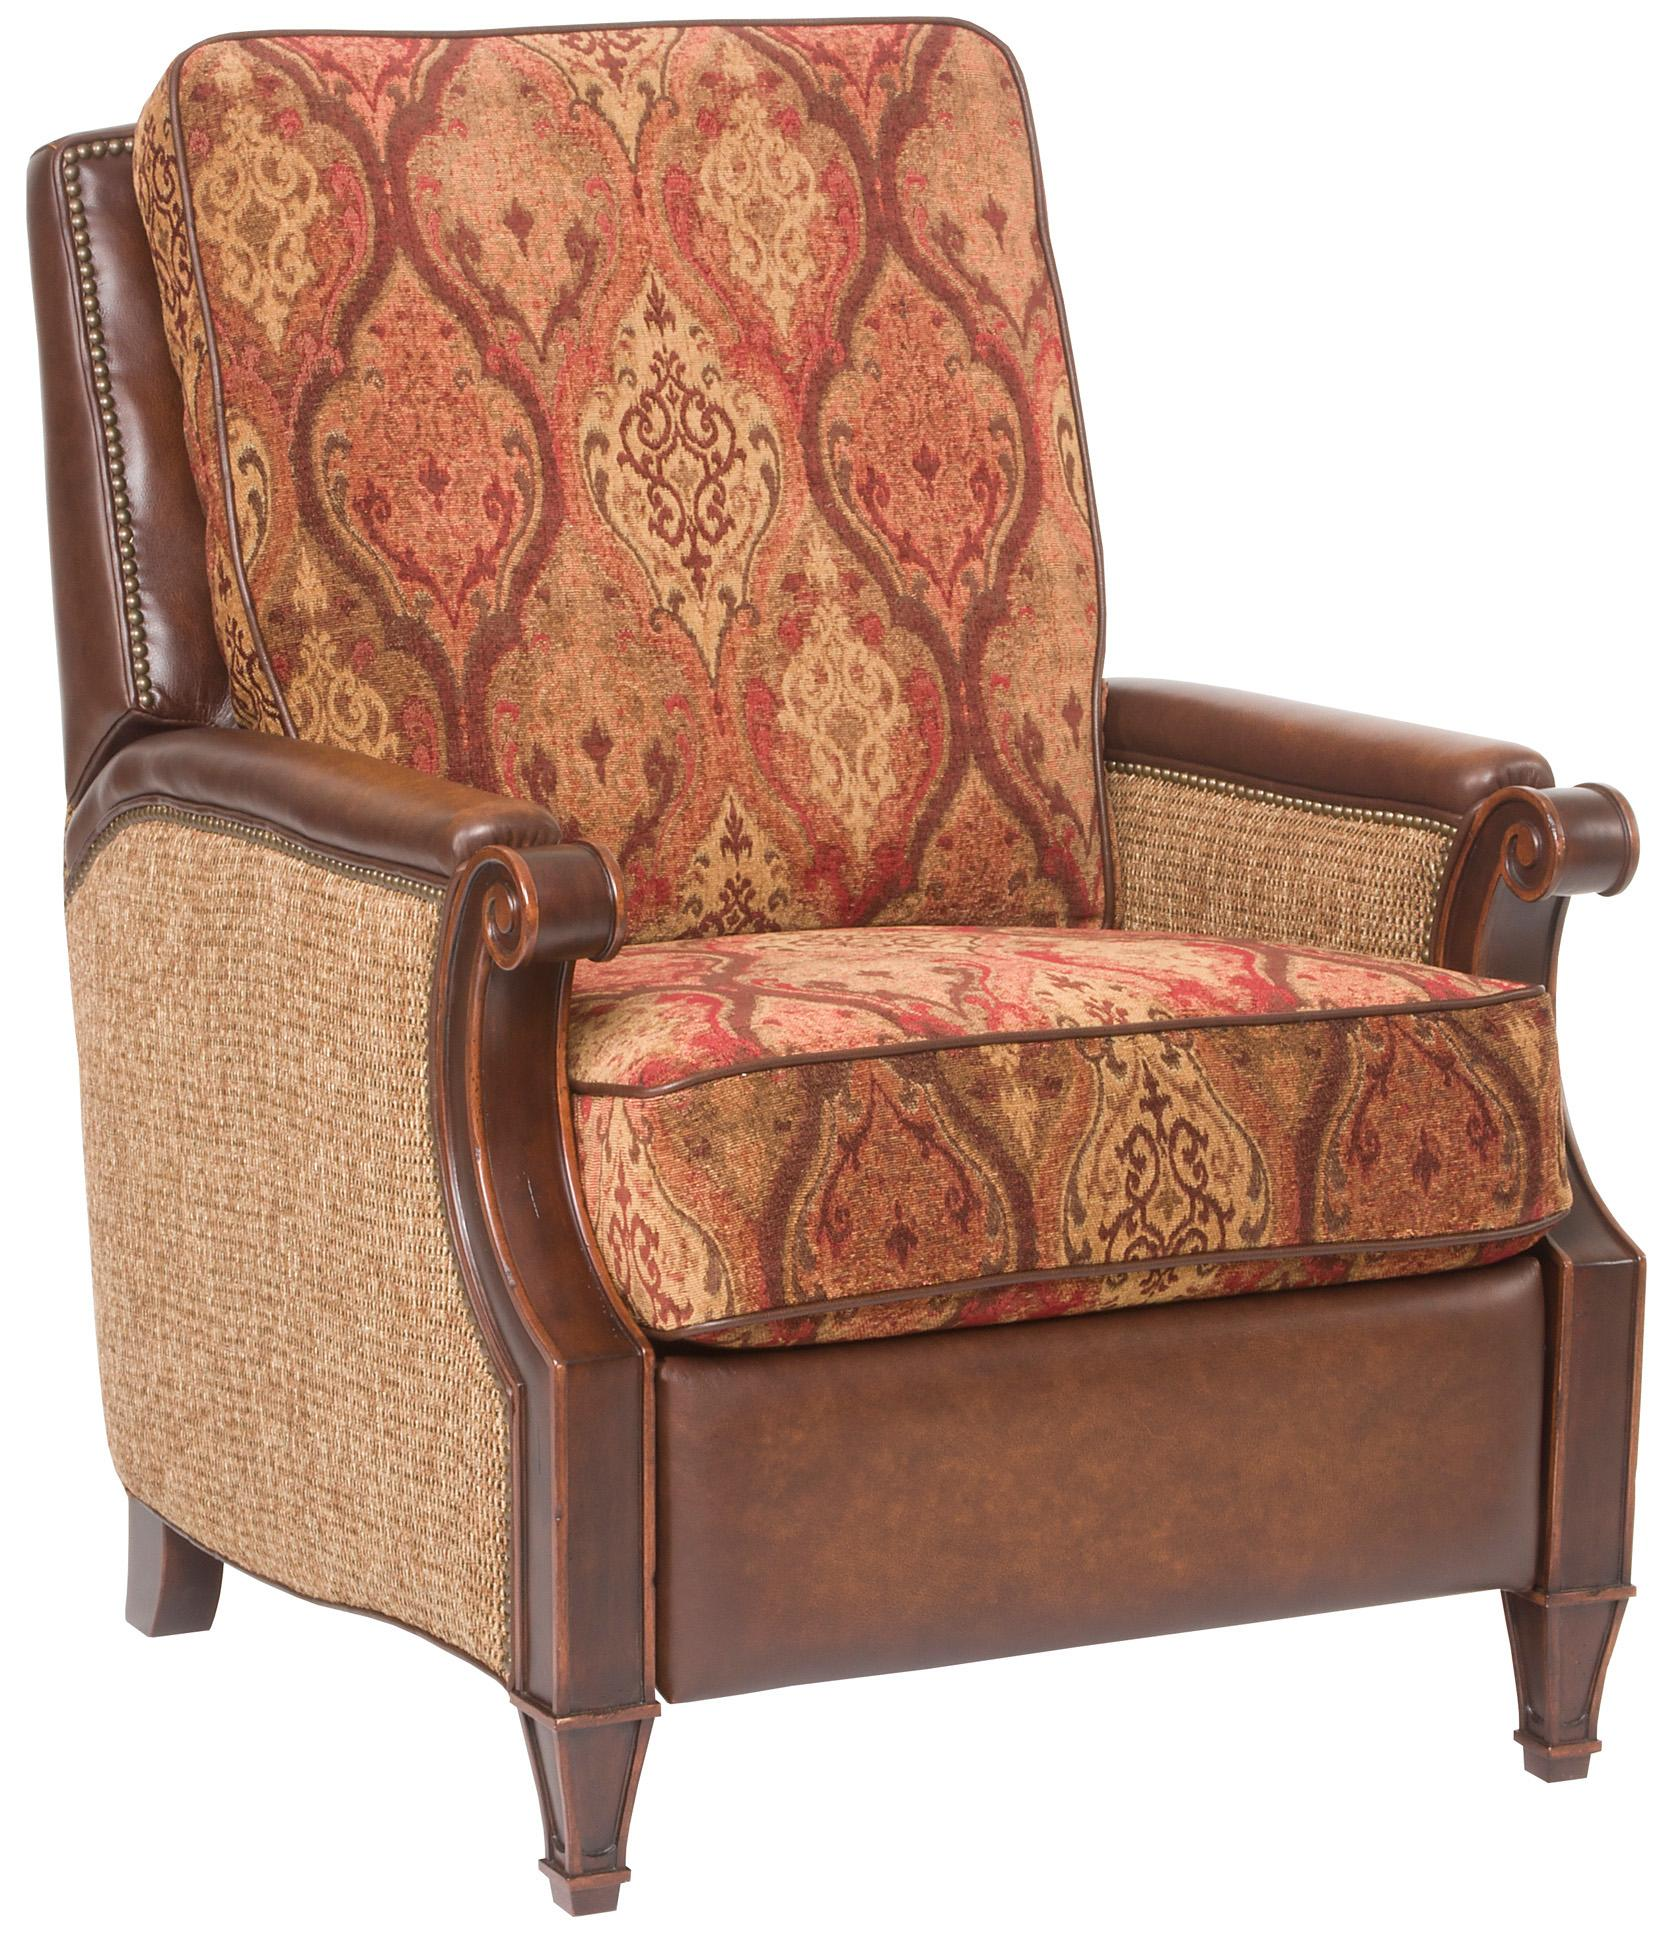 Hooker Furniture Seven Seas Seating - Reclining Chairs Recliner Chair - Item Number: RC300-030